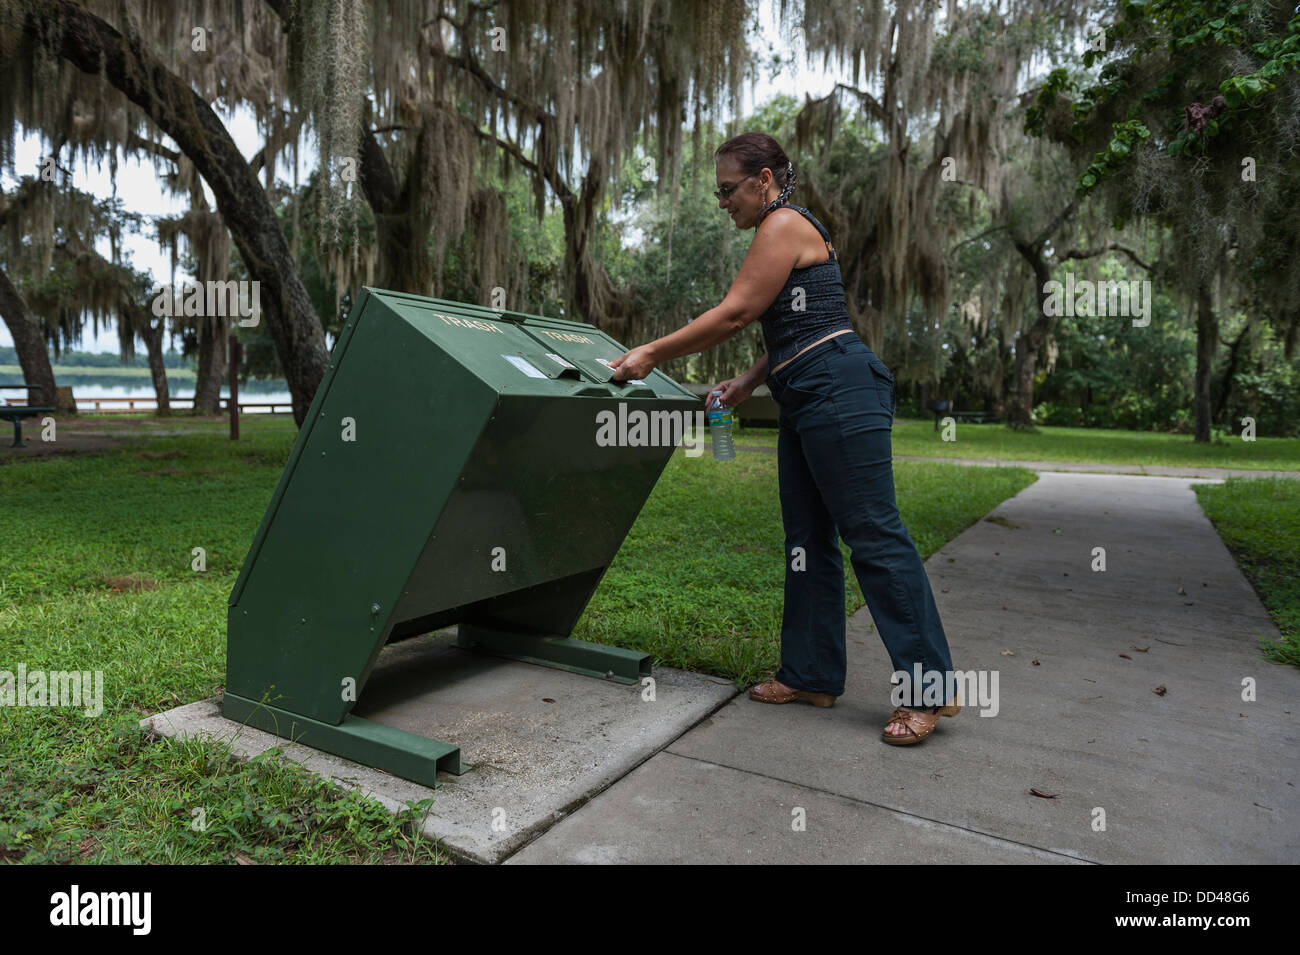 A woman discarding trash while at the Mill Dam State Park Ocala, Florida National Forest USA - Stock Image